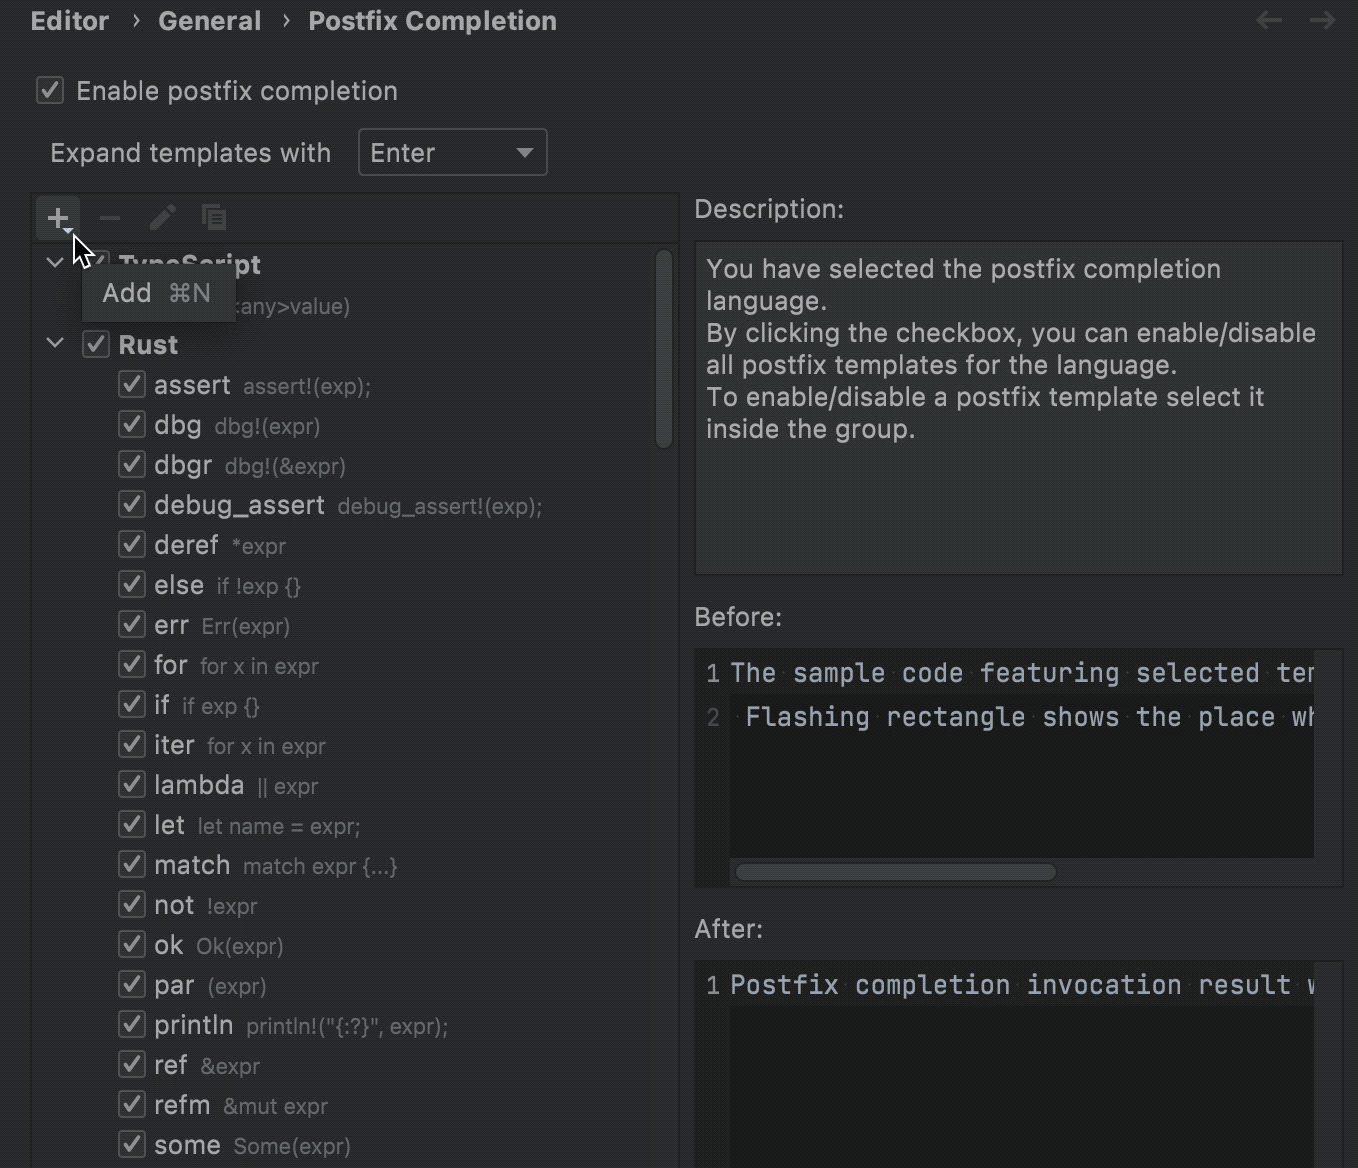 Creating a custom postfix completion template